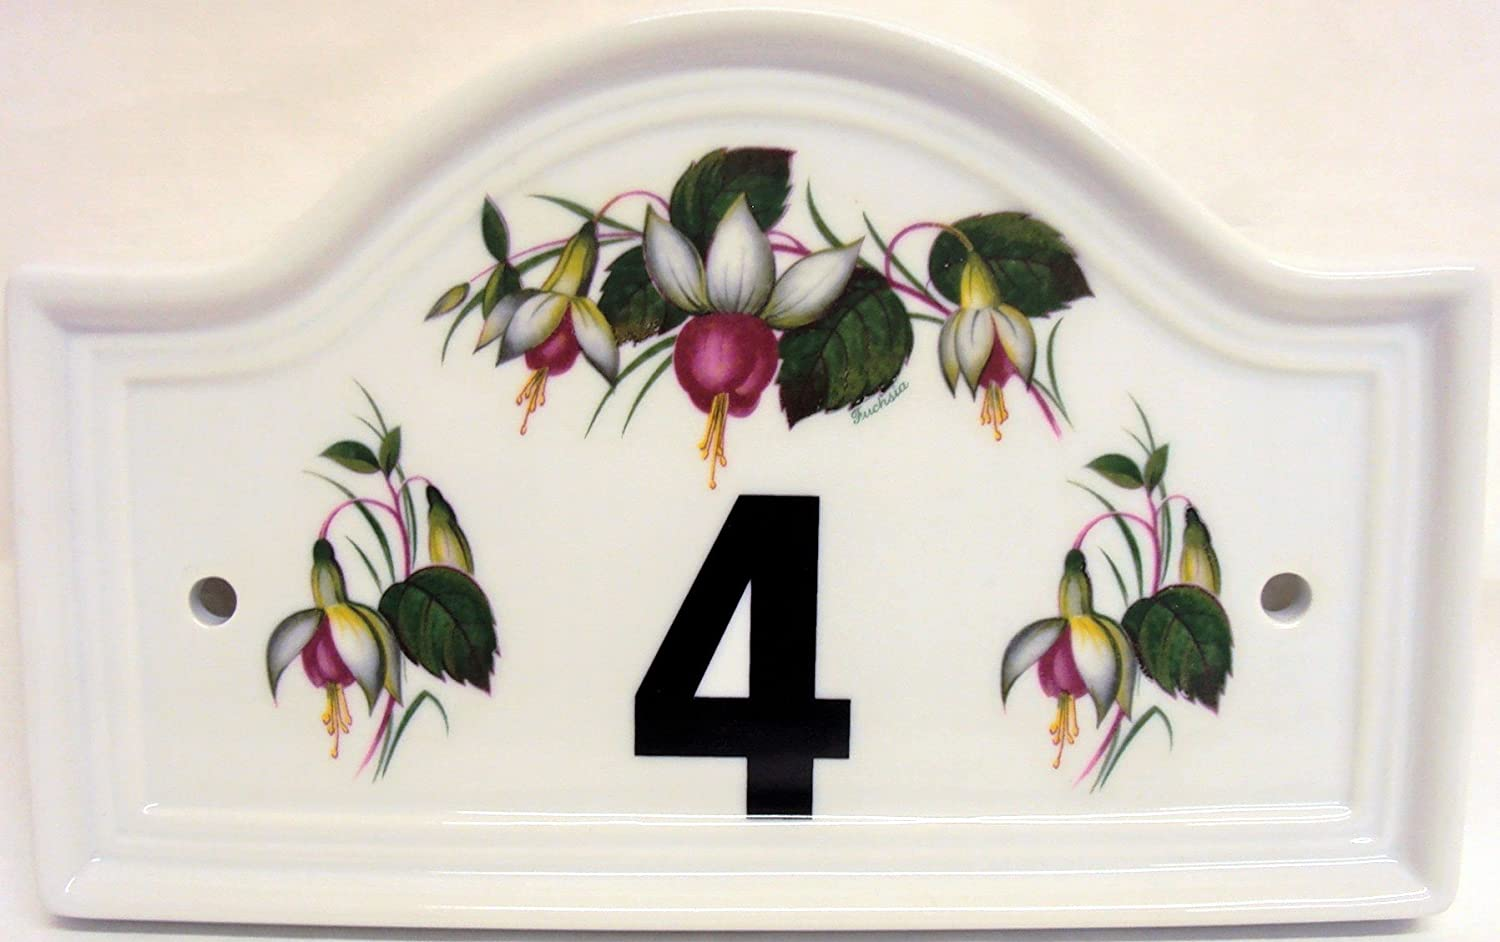 Fuchsia House Door Number Plaque Ceramic Fuchsia House Door Number Sign Any Number Available Hand Decorated in the U.K. Free UK Delivery Rainbow Decors Ltd.